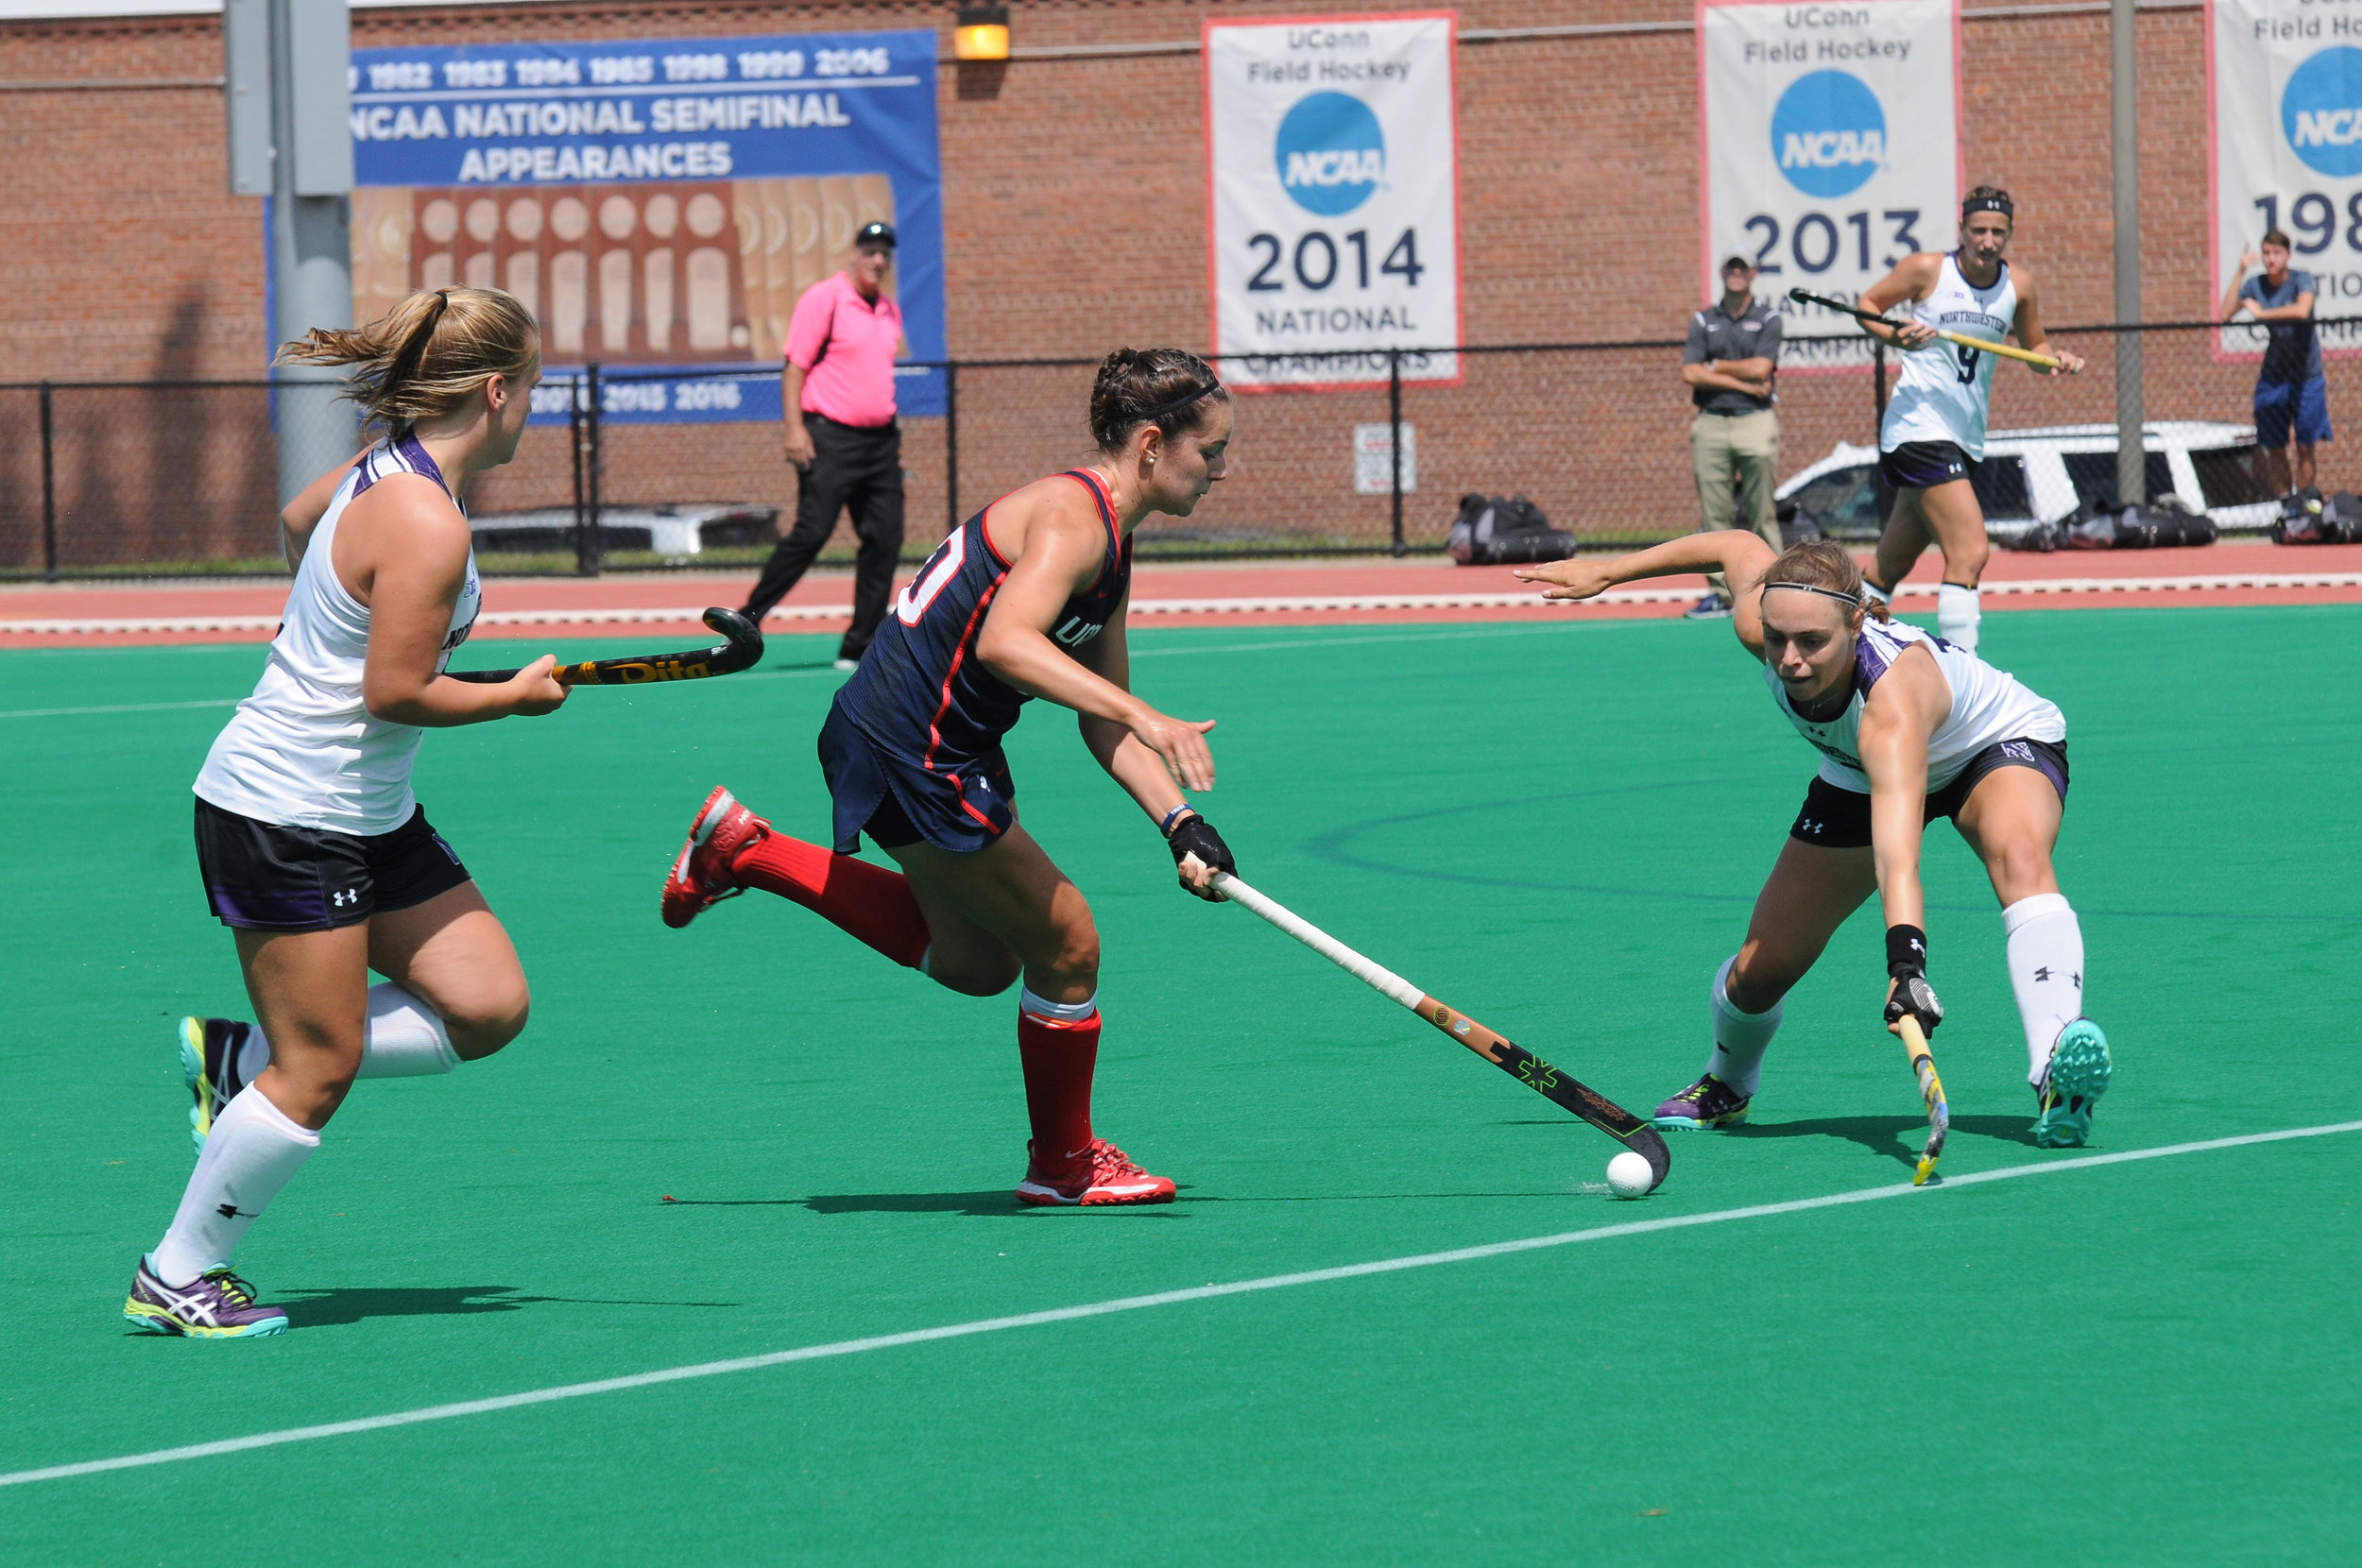 Field Hockey Tournament Time Is Here Again The Daily Campus